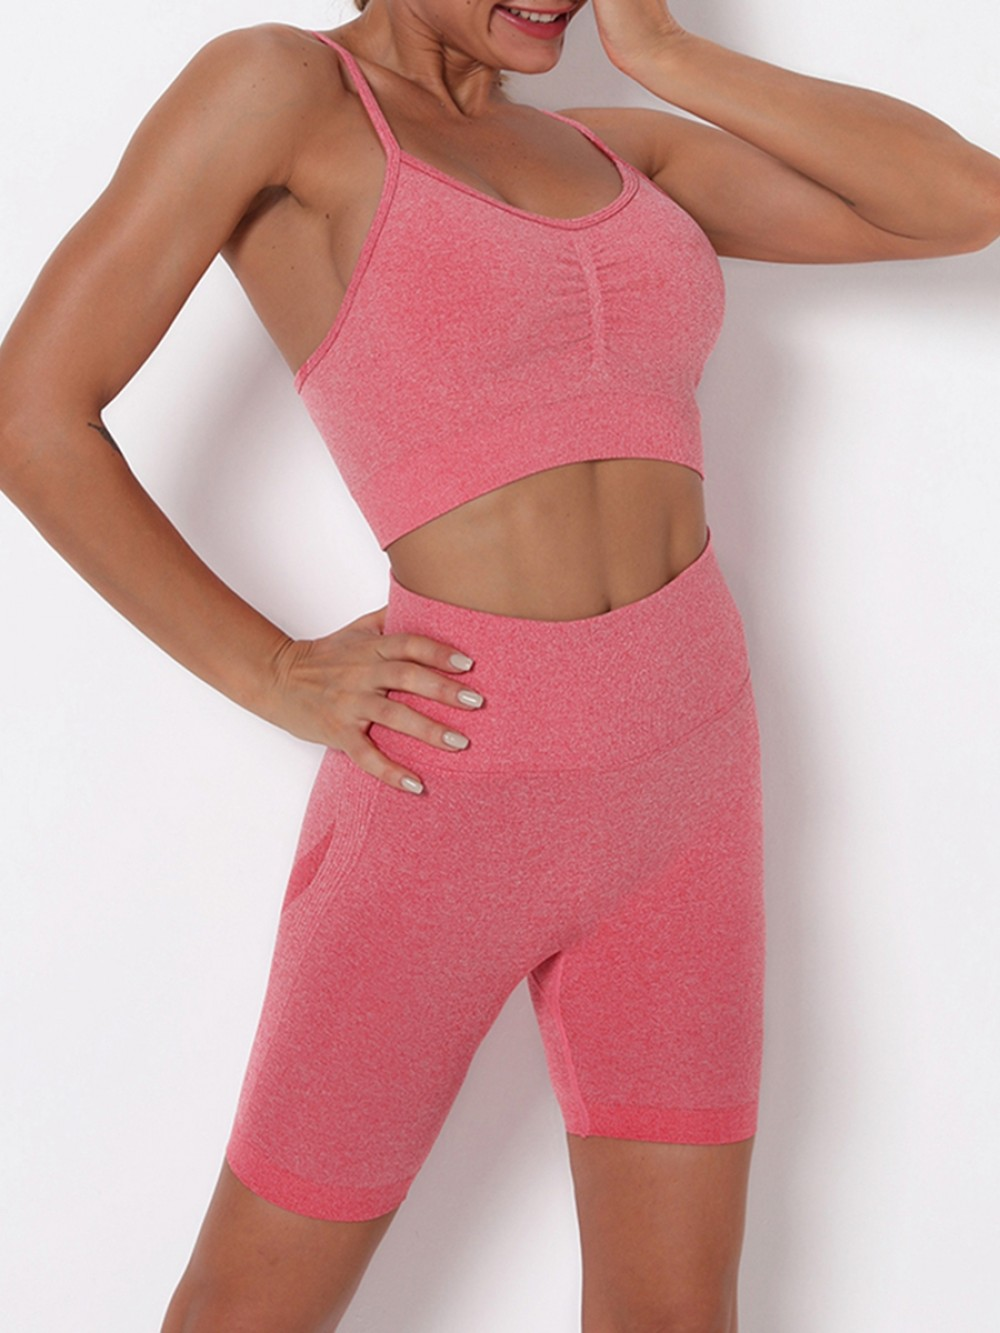 Watermelon Red Pleated Sports Bra High Waist Shorts Slimming Fit